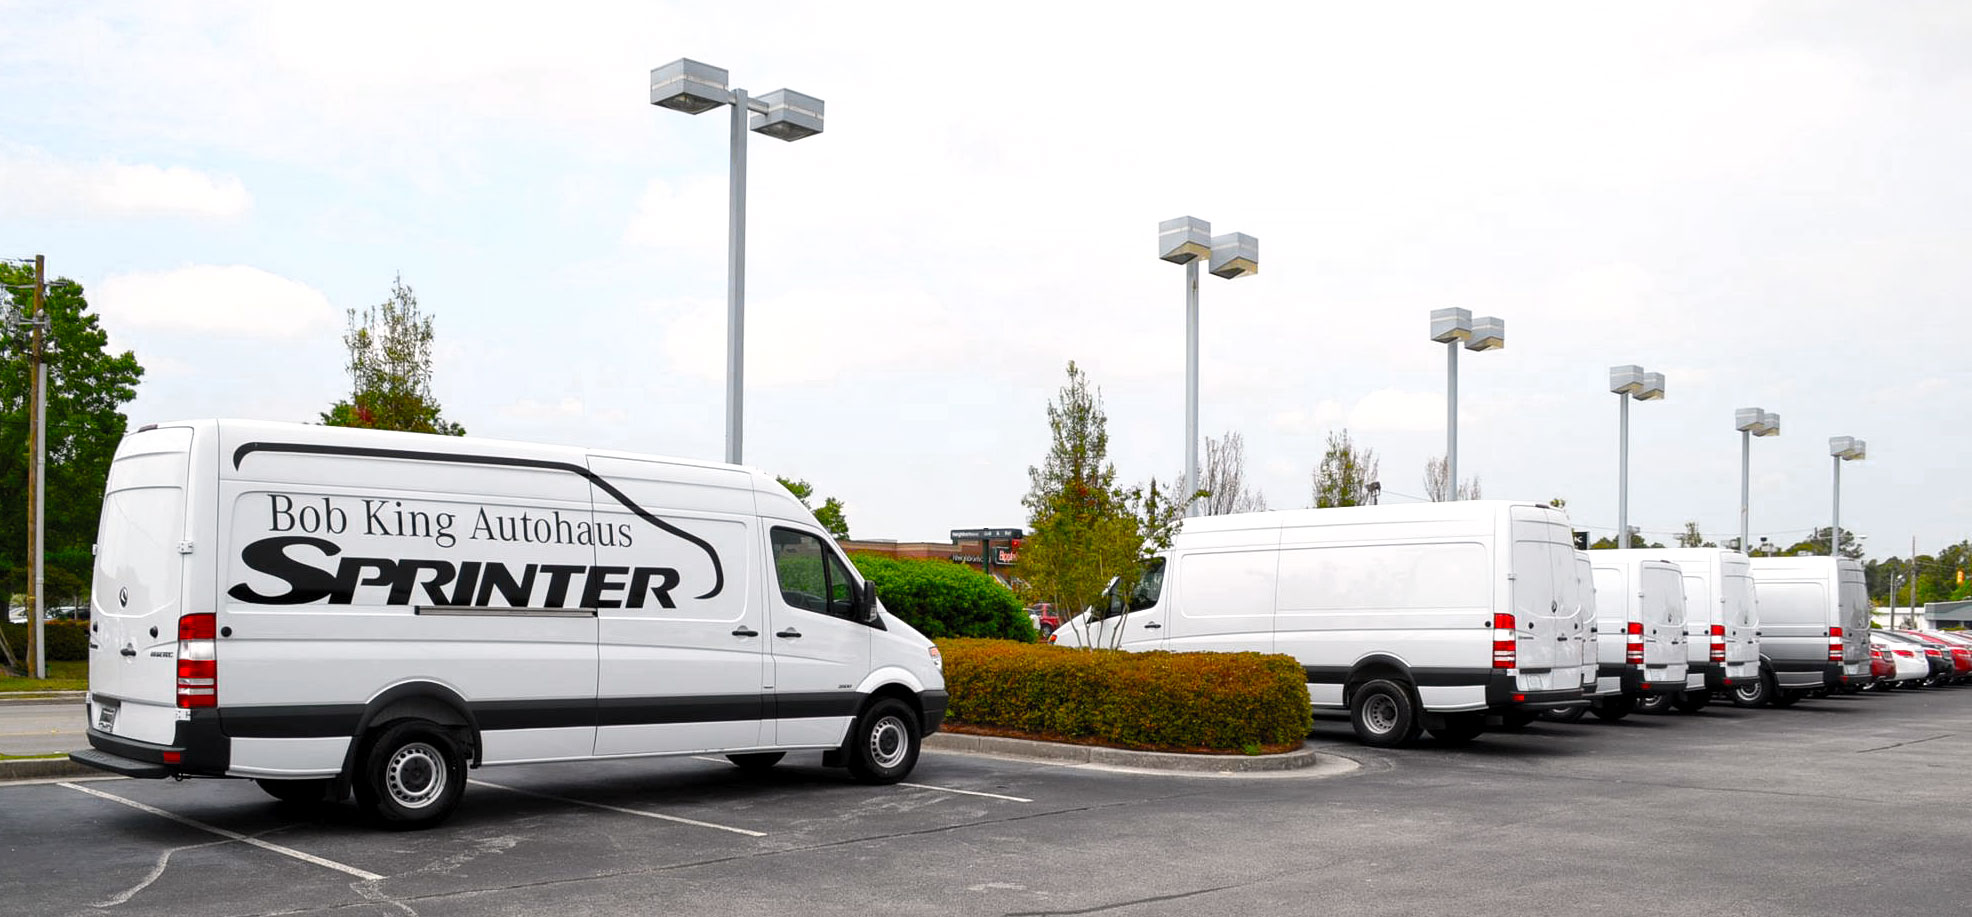 Mercedes.Sprinter.Outdoor.jpg